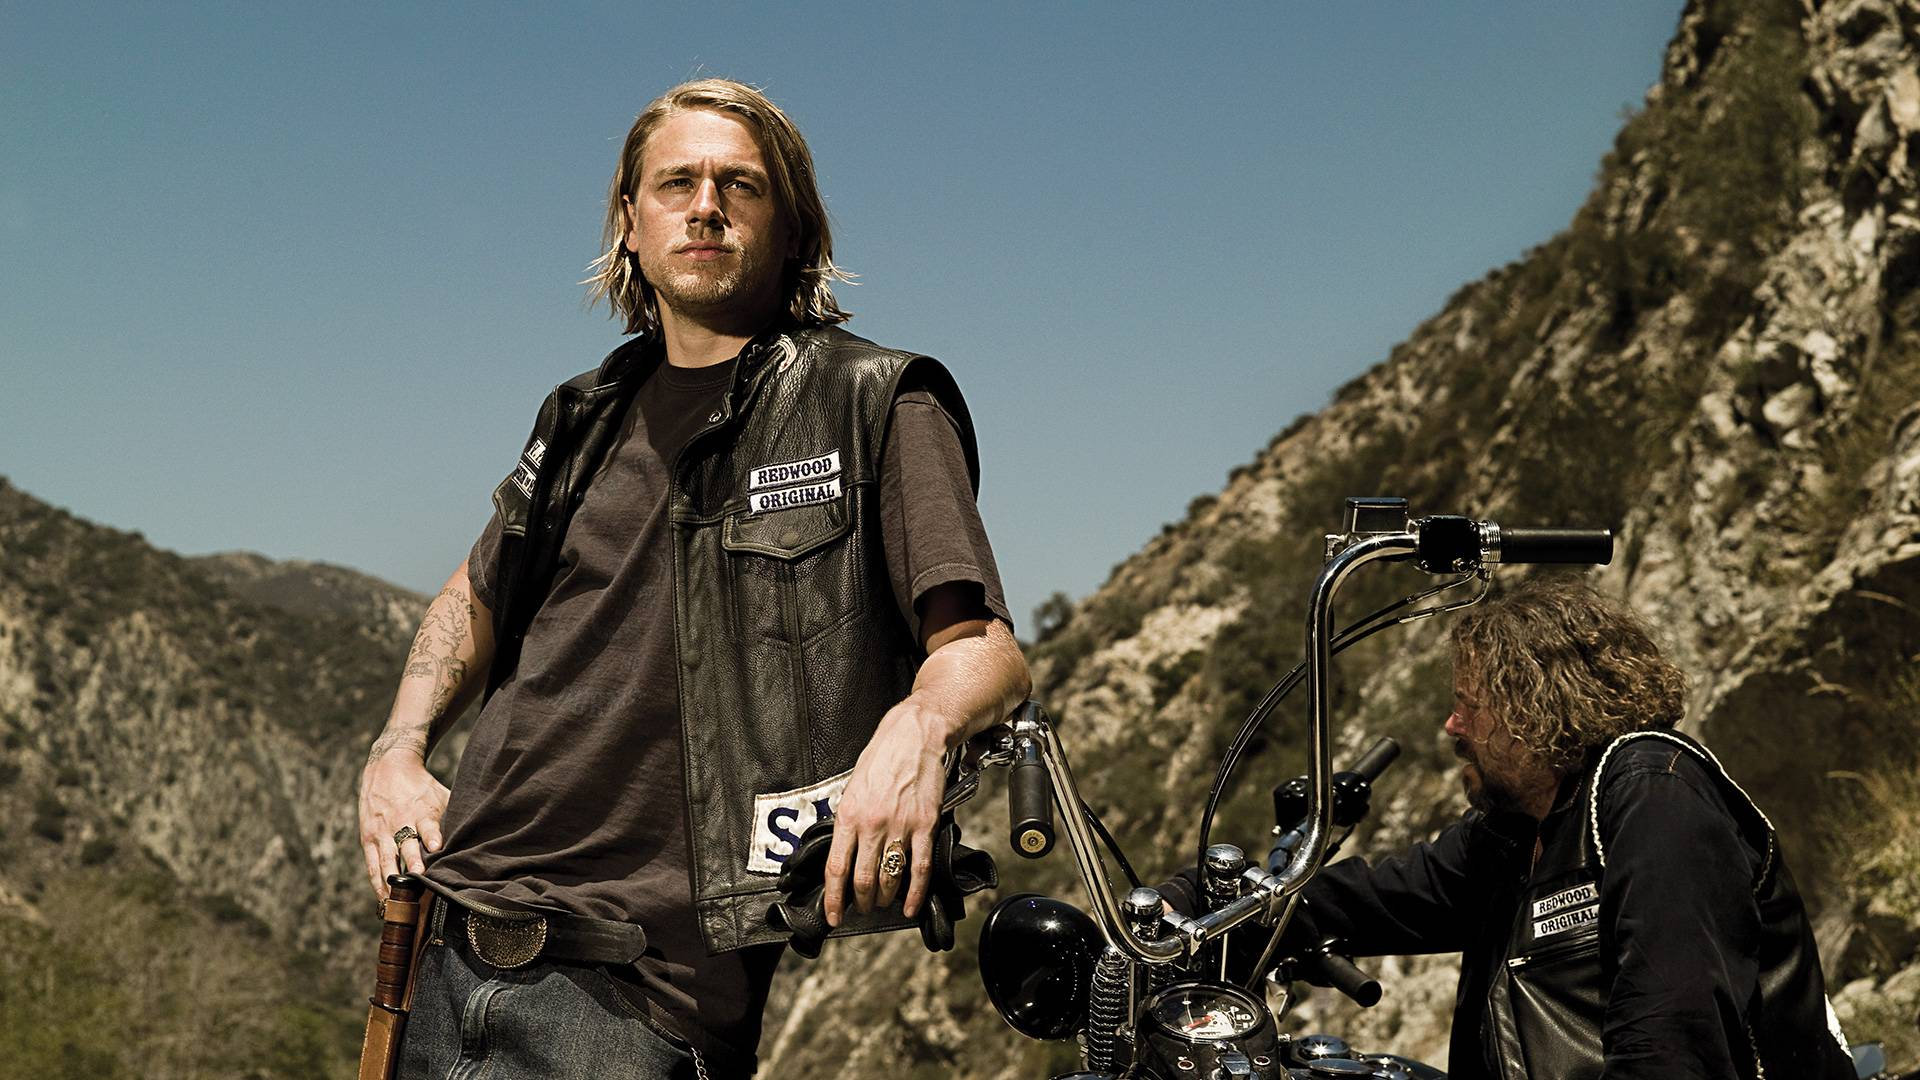 Free Hd Wallpaper Download Charlie Hunnam Wallpaper: Sons Of Anarchy Wallpaper Jax